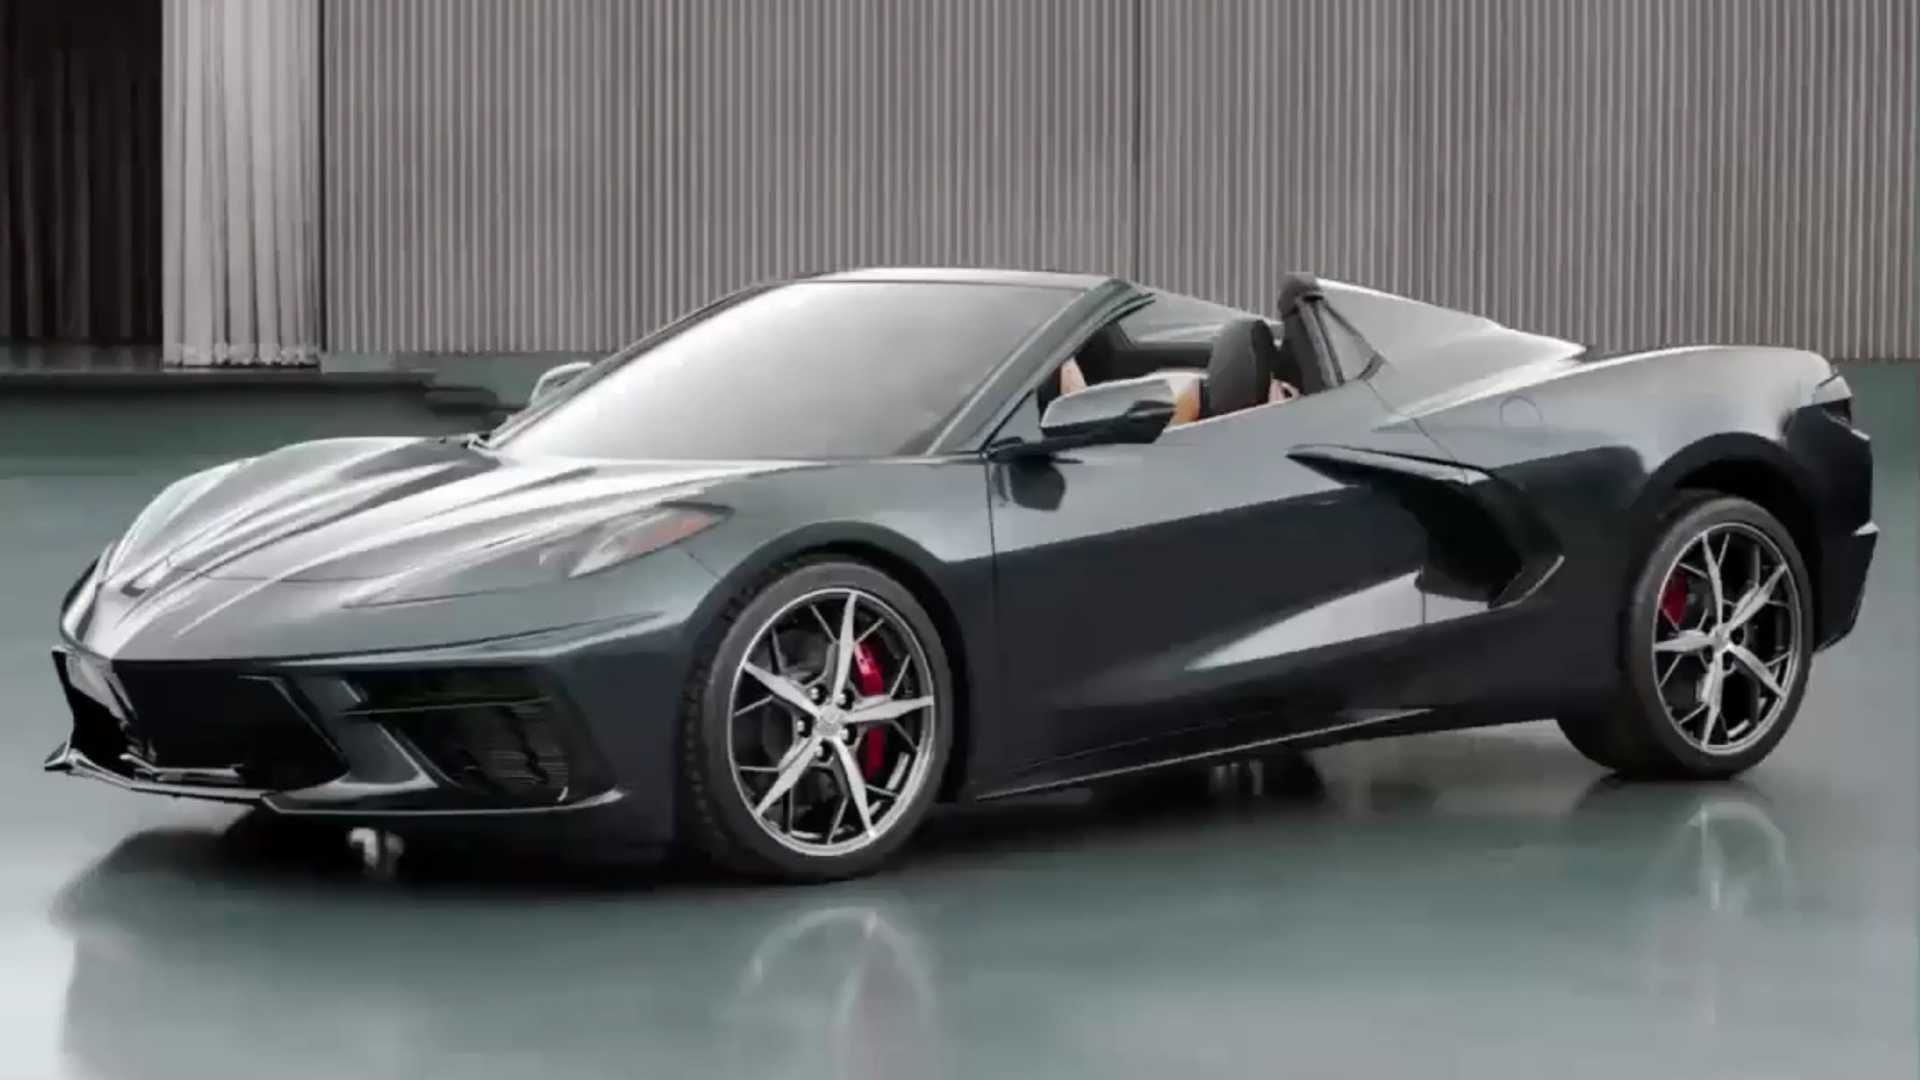 2020-chevy-corvette-convertible-pre-production-2